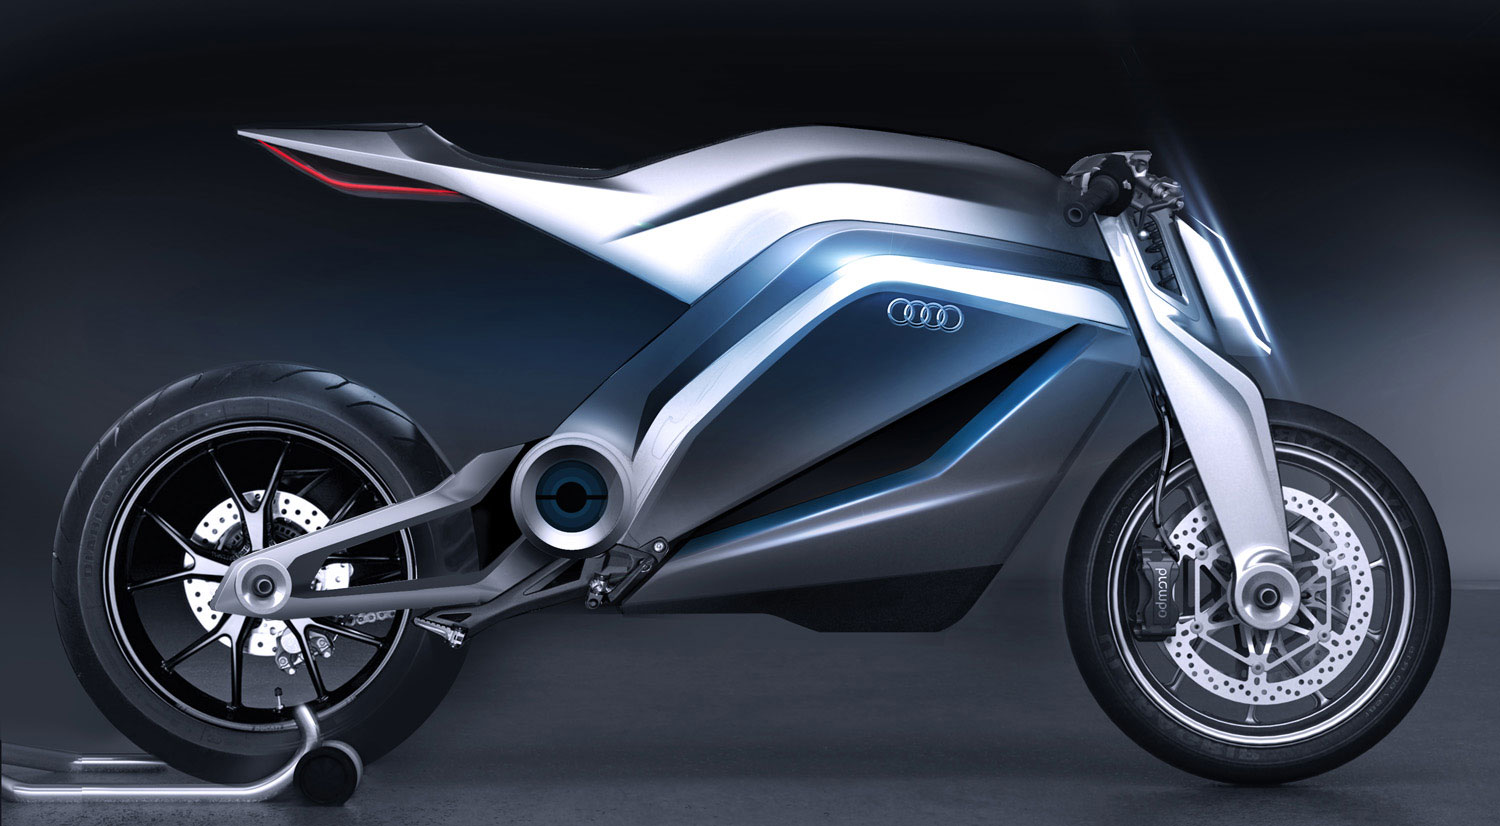 Audi Shows Very Cool Motorcycle Concept - autoevolution